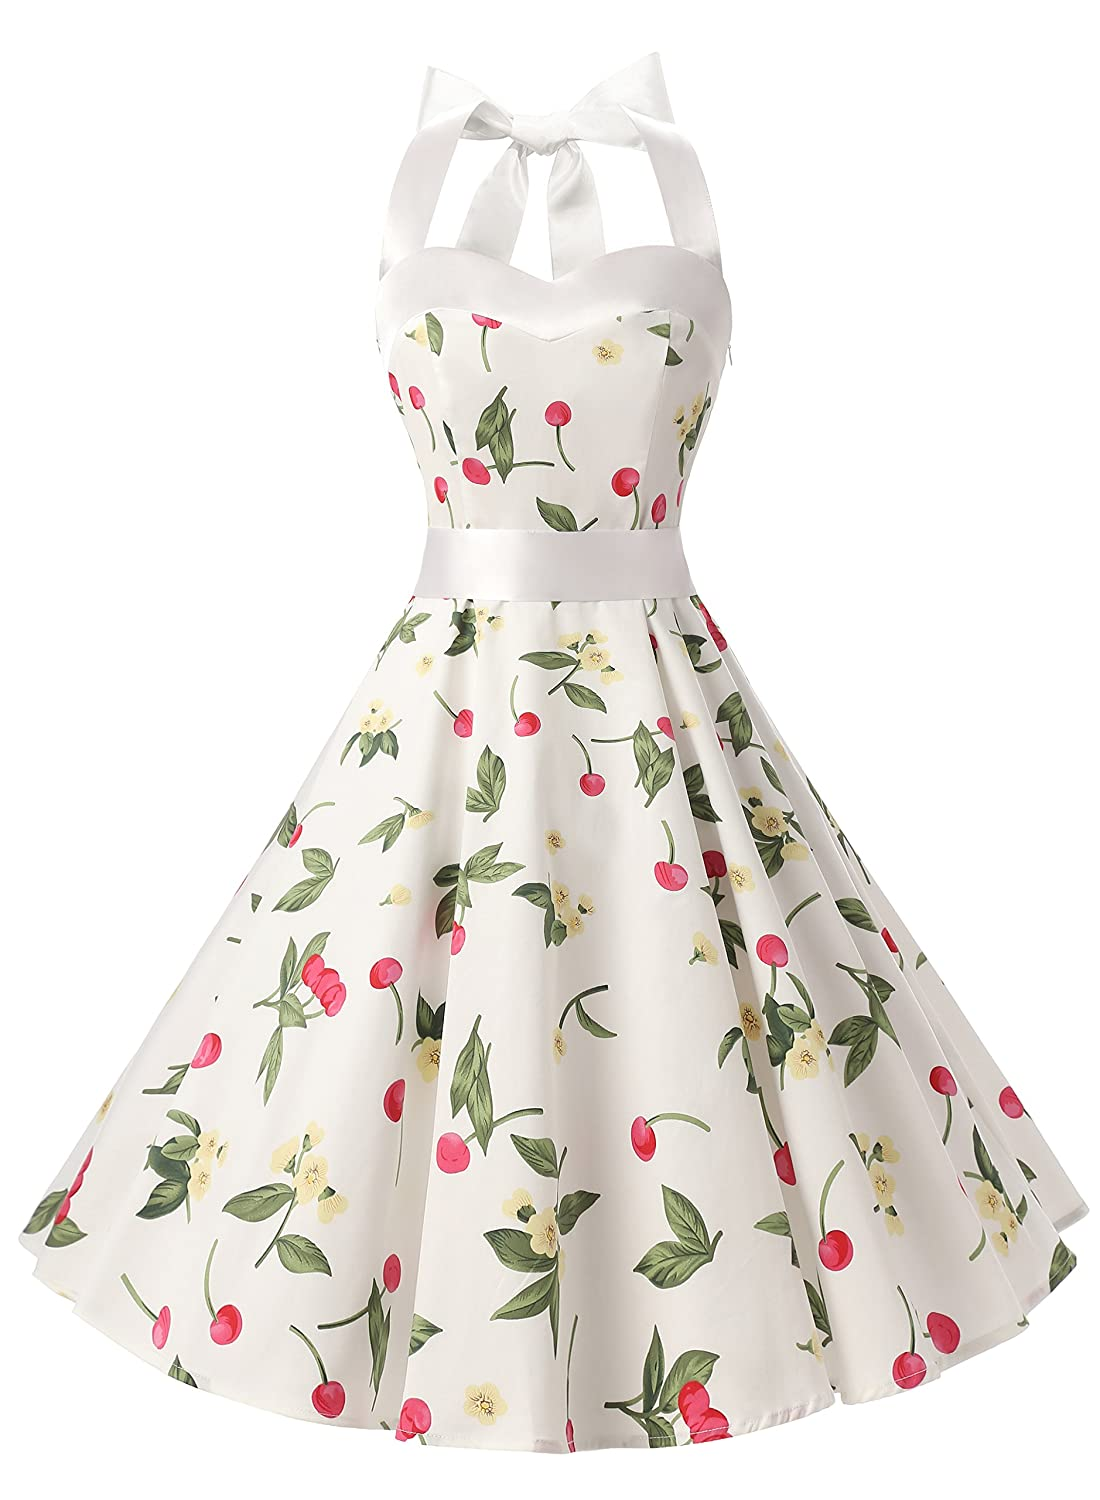 TALLA M. Dresstells® Halter 50s Rockabilly Polka Dots Audrey Dress Retro Cocktail Dress White Small Cherry M